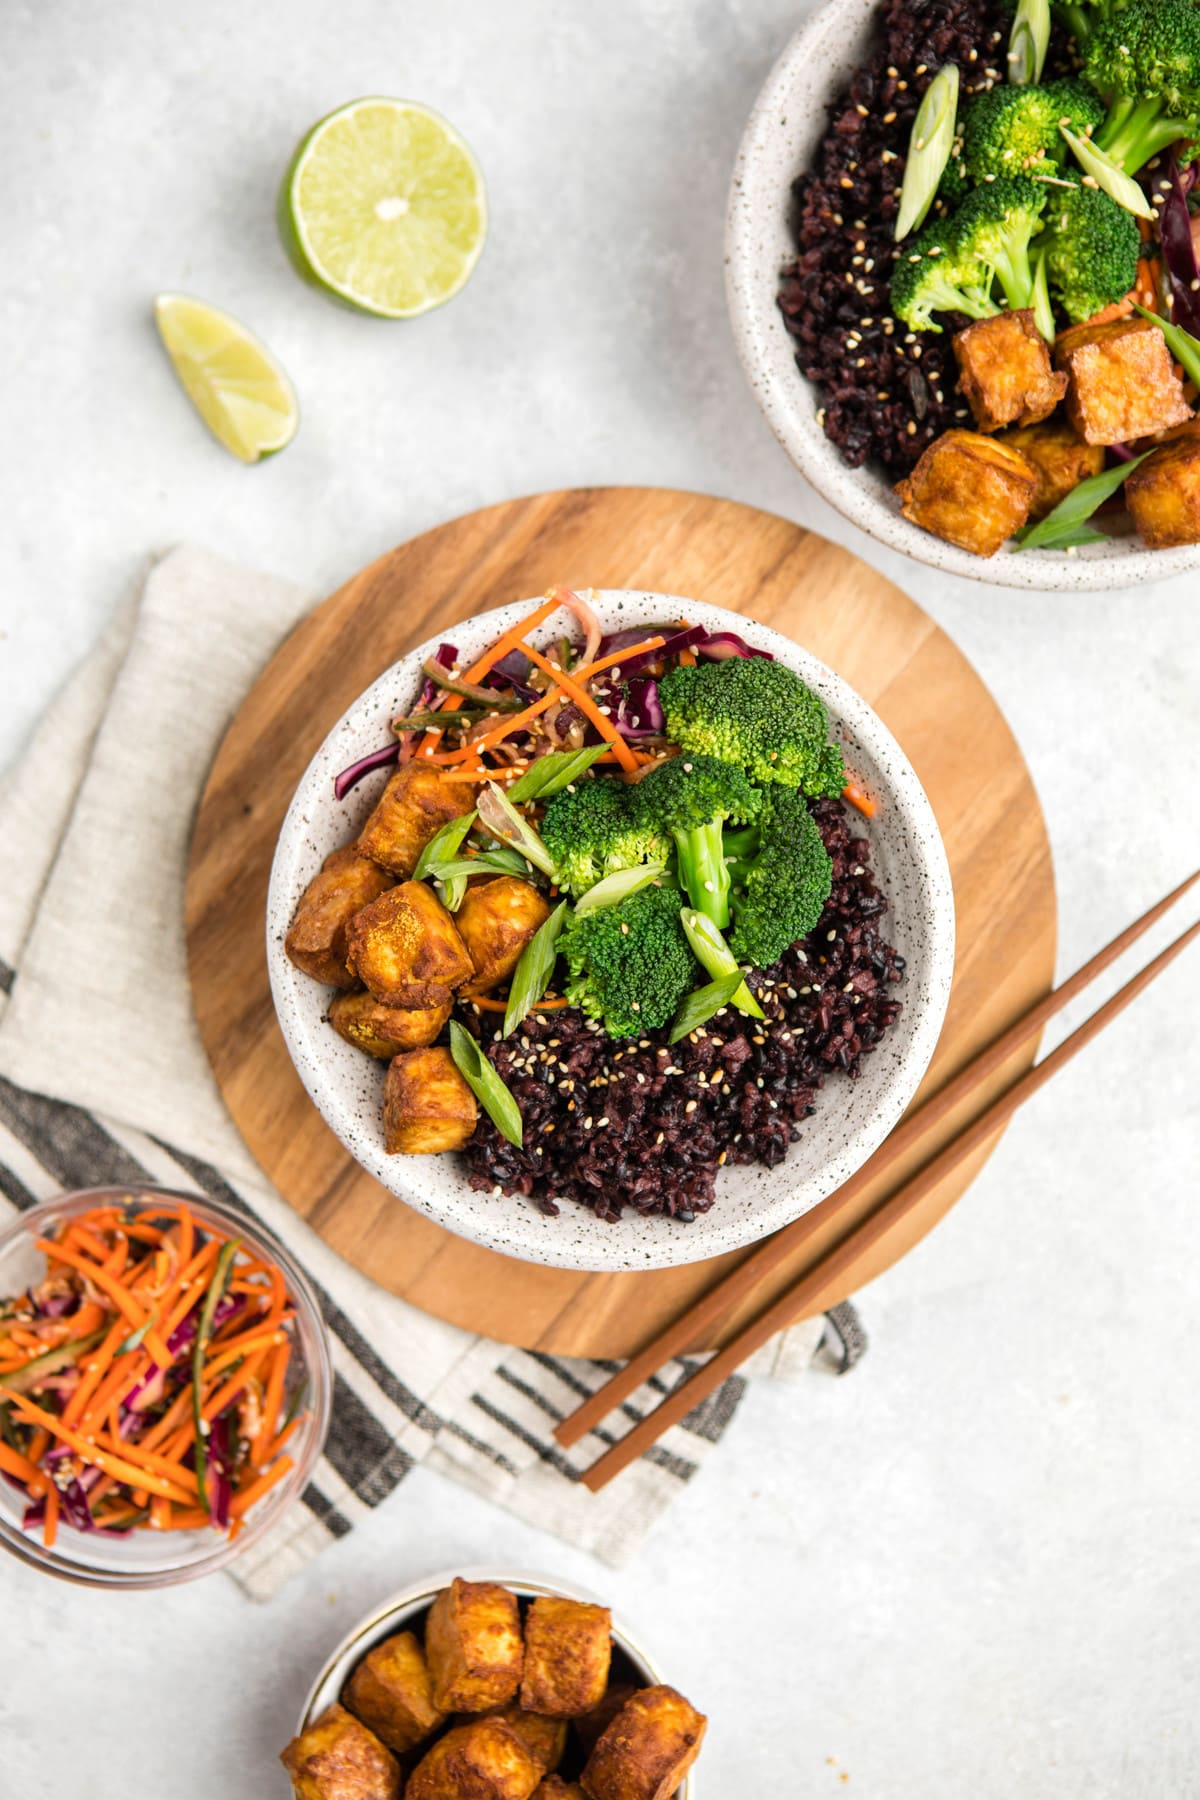 two bowls filled with black rice, tofu, and steamed broccoli and garnished with sesame seeds